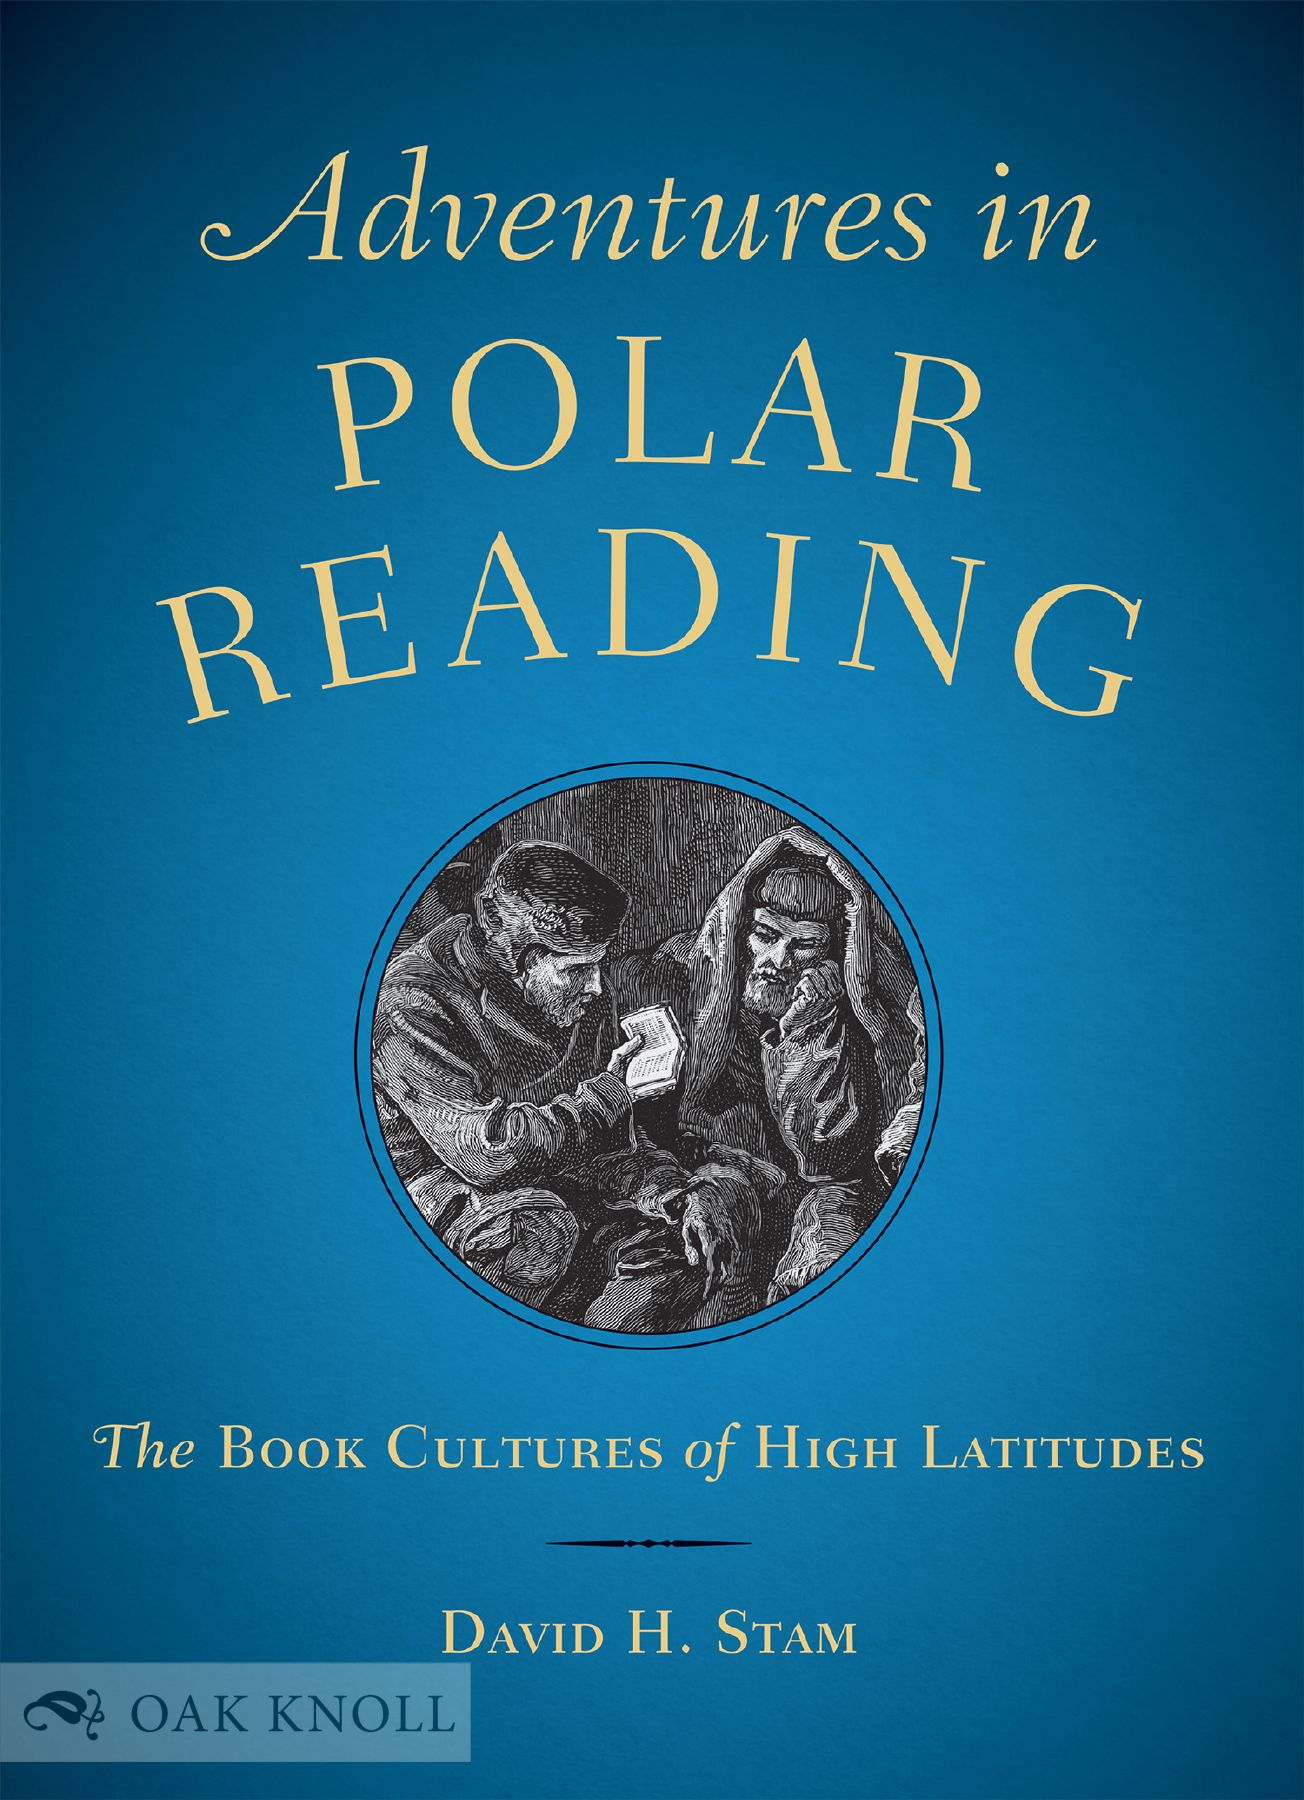 Adventures in Polar Reading cover image